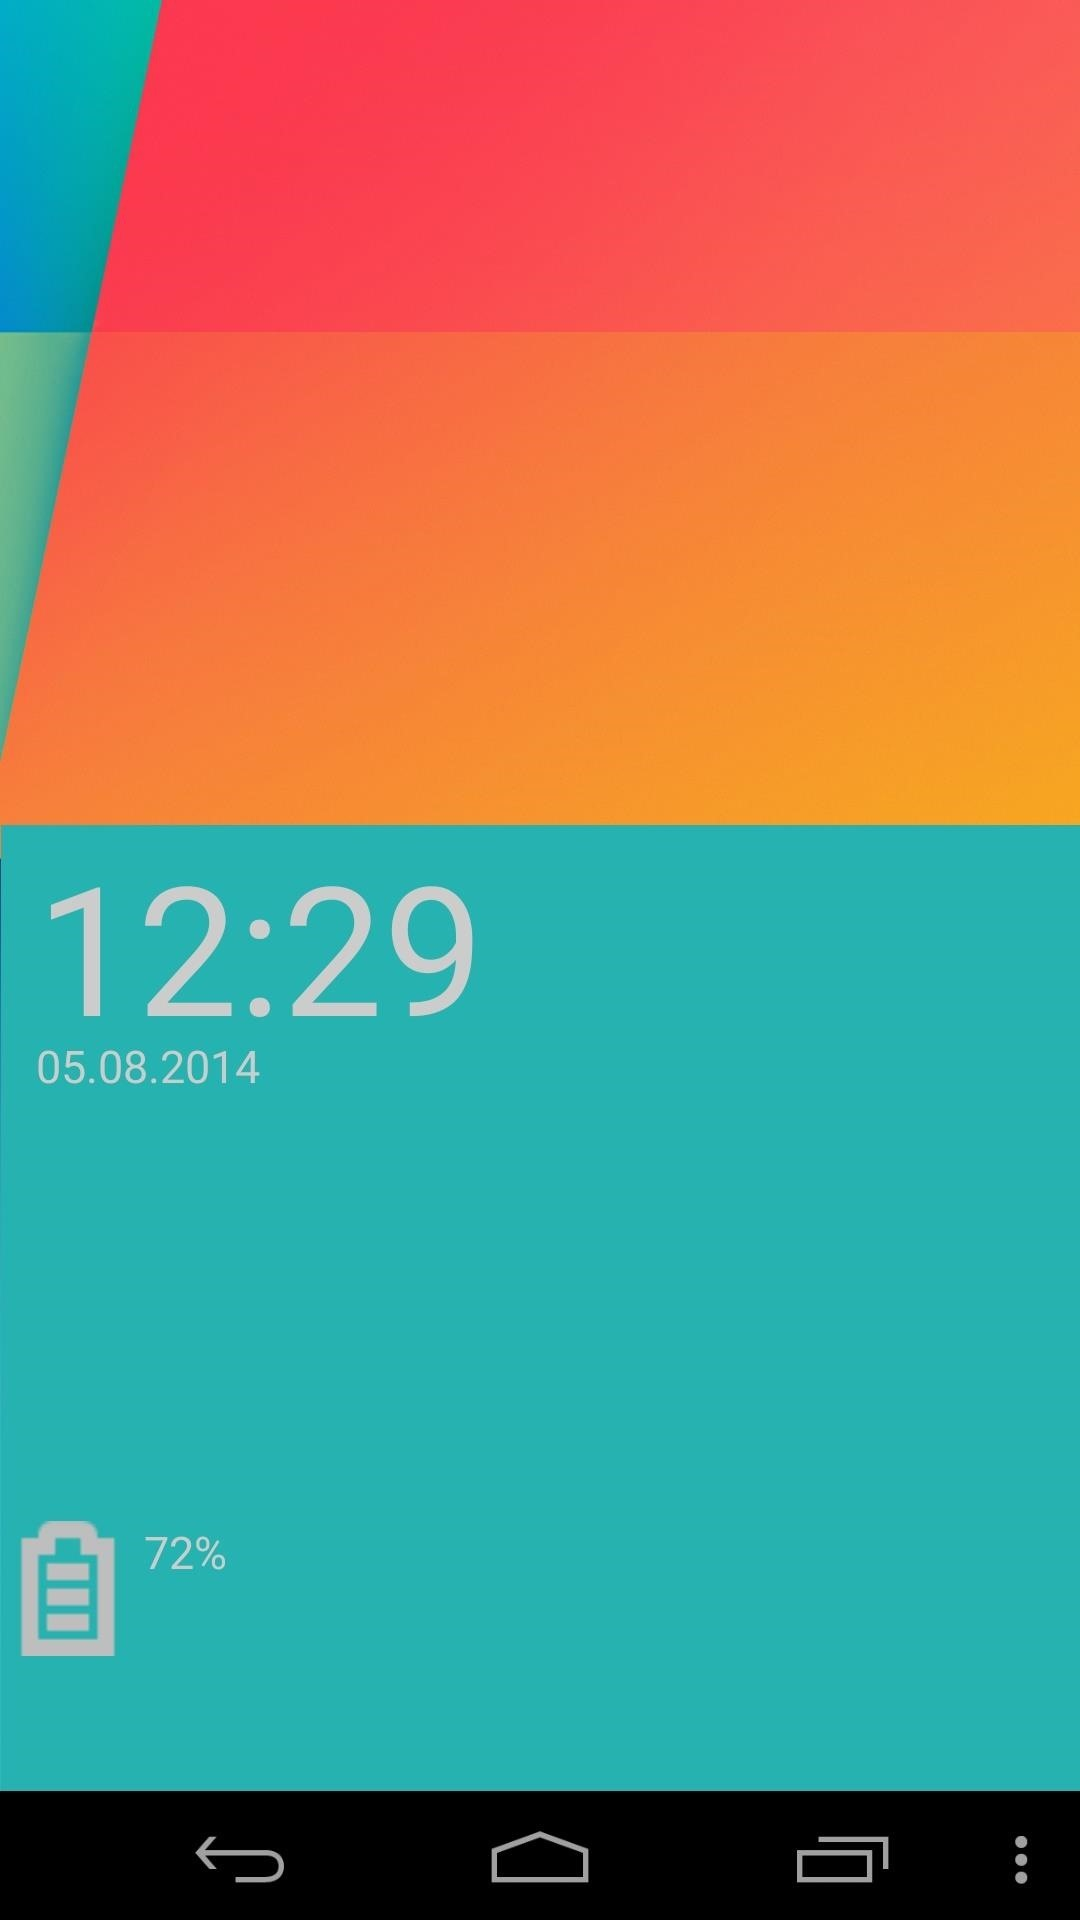 How to Get the OnePlus One Lock Screen on Your Nexus 5 or Other Android Phone